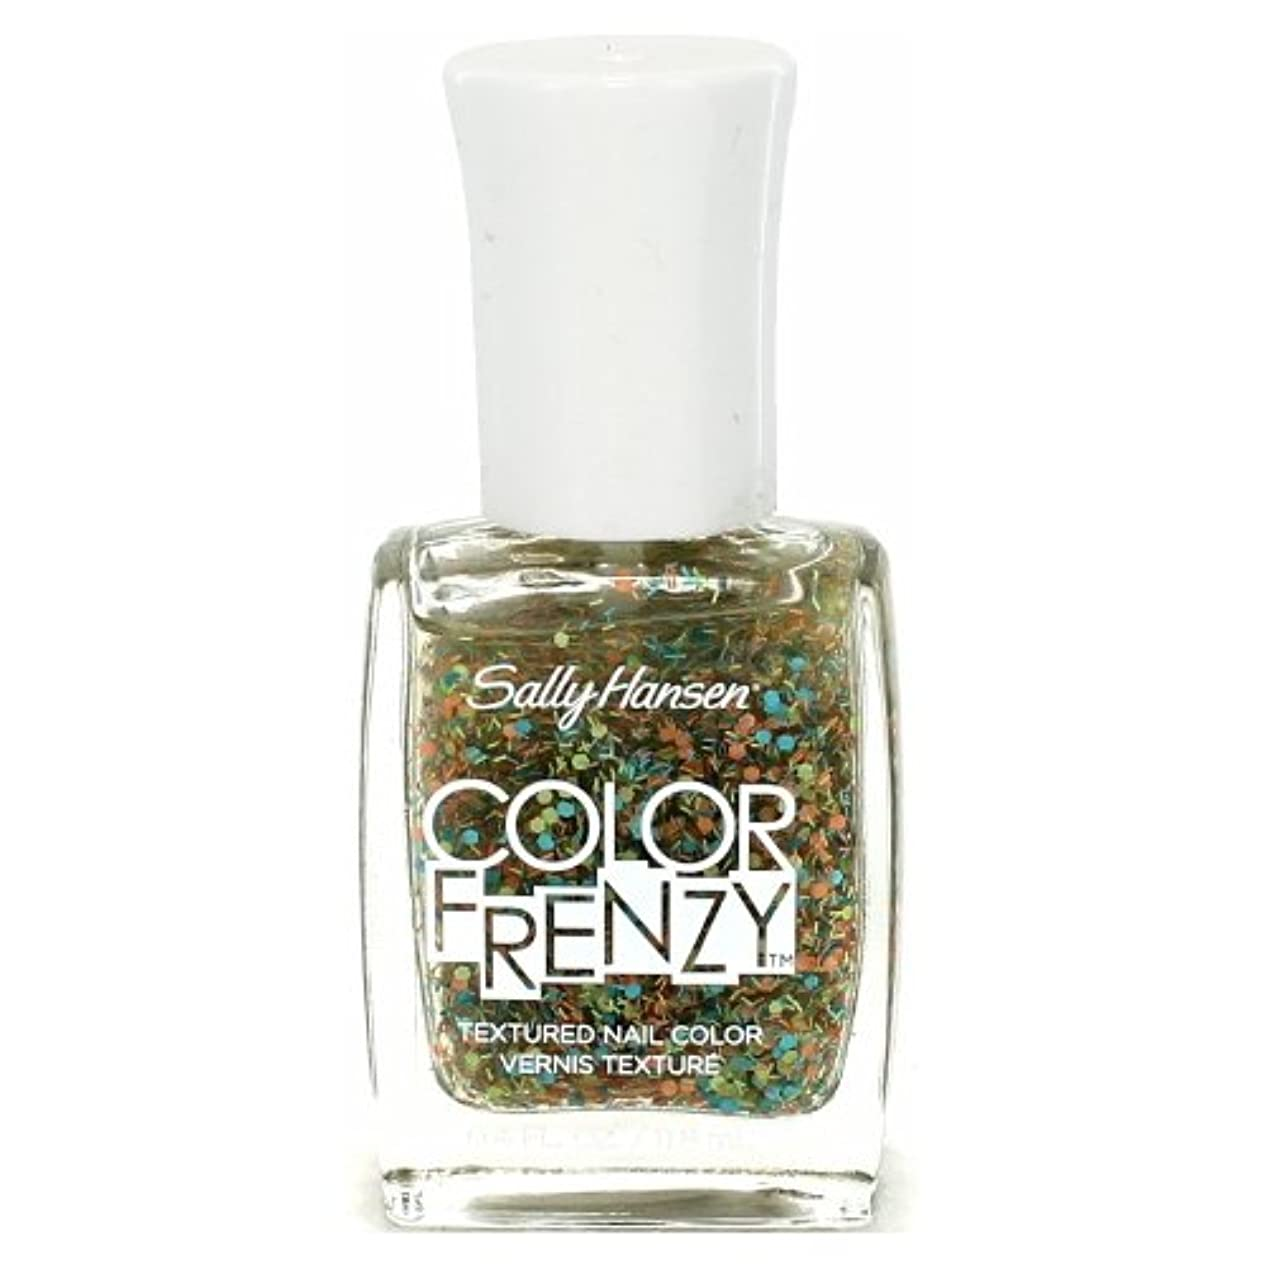 分子アンドリューハリディ代表団(3 Pack) SALLY HANSEN Color Frenzy Textured Nail Color - Paint Party (並行輸入品)